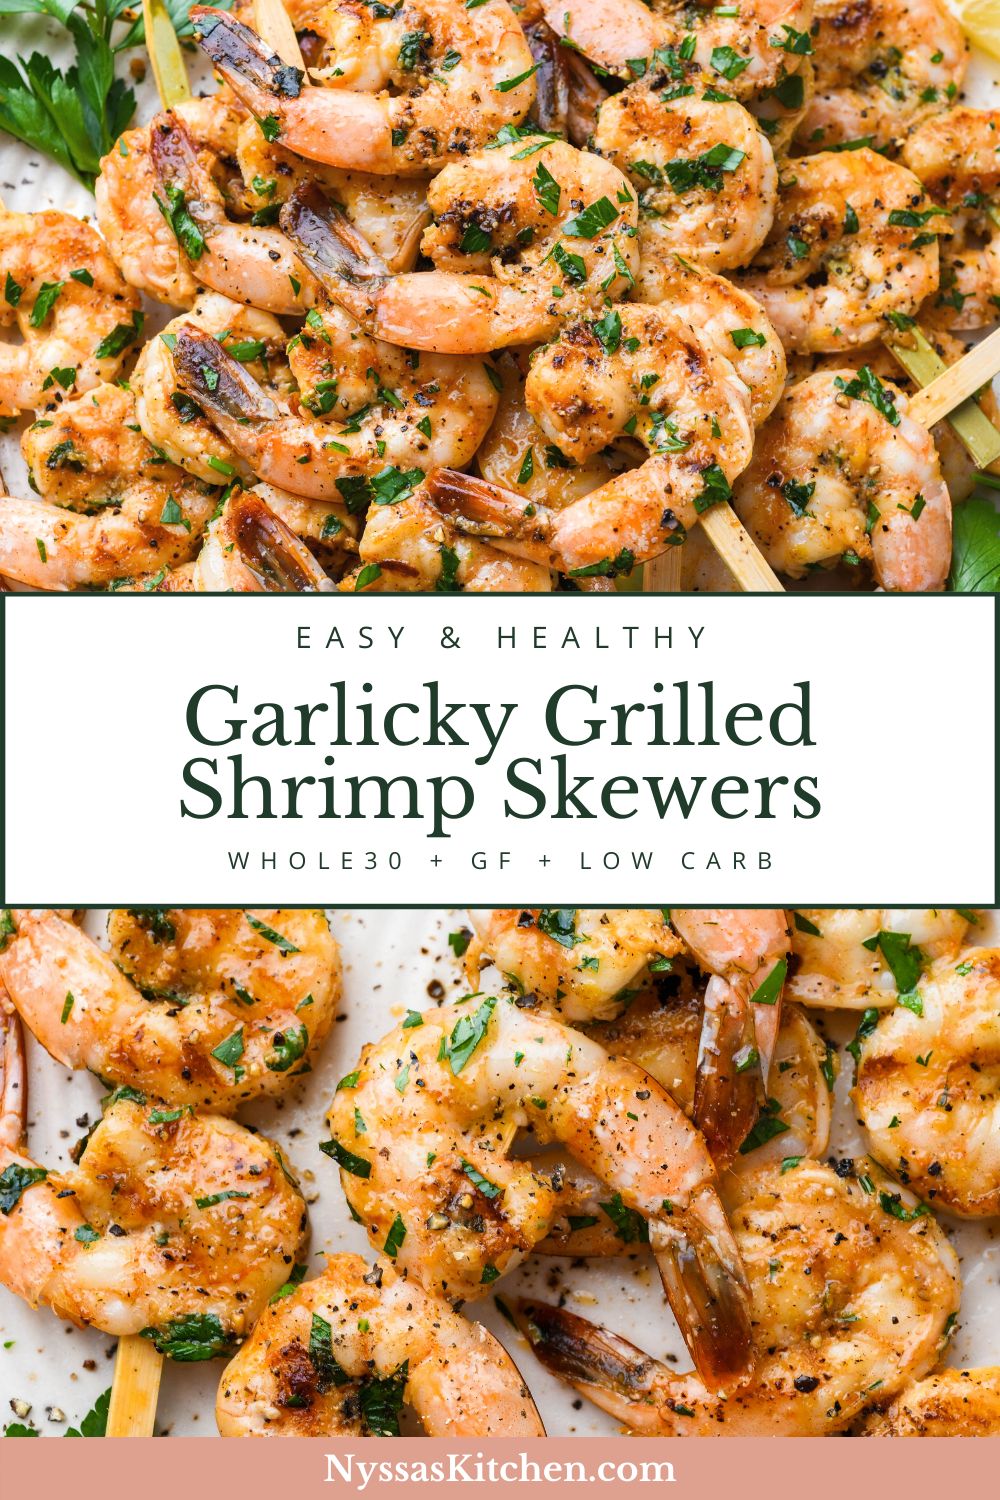 These garlicky grilled shrimp skewers are a super simple and flavorful recipe that is a delicious grilling staple! Made with large juicy shrimp, and a quick garlic and herb infused marinade, they are perfect for a weekend BBQ or an easy family dinner. Option for cooking in the oven included in blog post. Whole30 compatible, paleo, gluten free, dairy free, and low carb / keto.